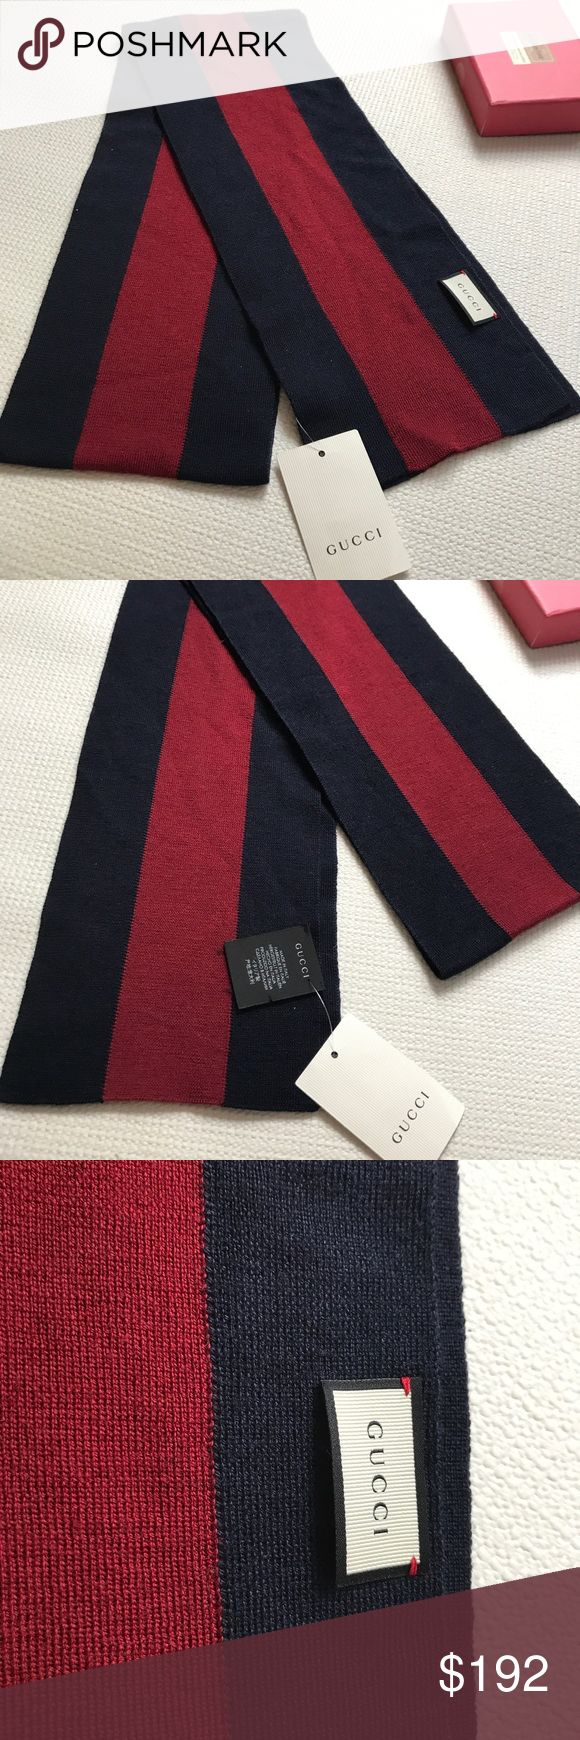 "❤️Authentic Gucci Blue Wool Silk Knit Web Scarf Say Hello to the winter !‼️.  Create your own style with your favorite sweater!!💙.   Fashionable & Authentic Gucci men's navy blue Wool Silk Knit Web Scarf-- Blue &  Red Wool Silk Knit. W16cm x L180cm.                                                                     --Fine knit Web scarf--  Blue and red wool silk knit 6.5""W x 59""L 70% wool and 30% silk SORRY NO TRADES 🚫.   NOTE: Model  showing the size and the look to style but not the…"